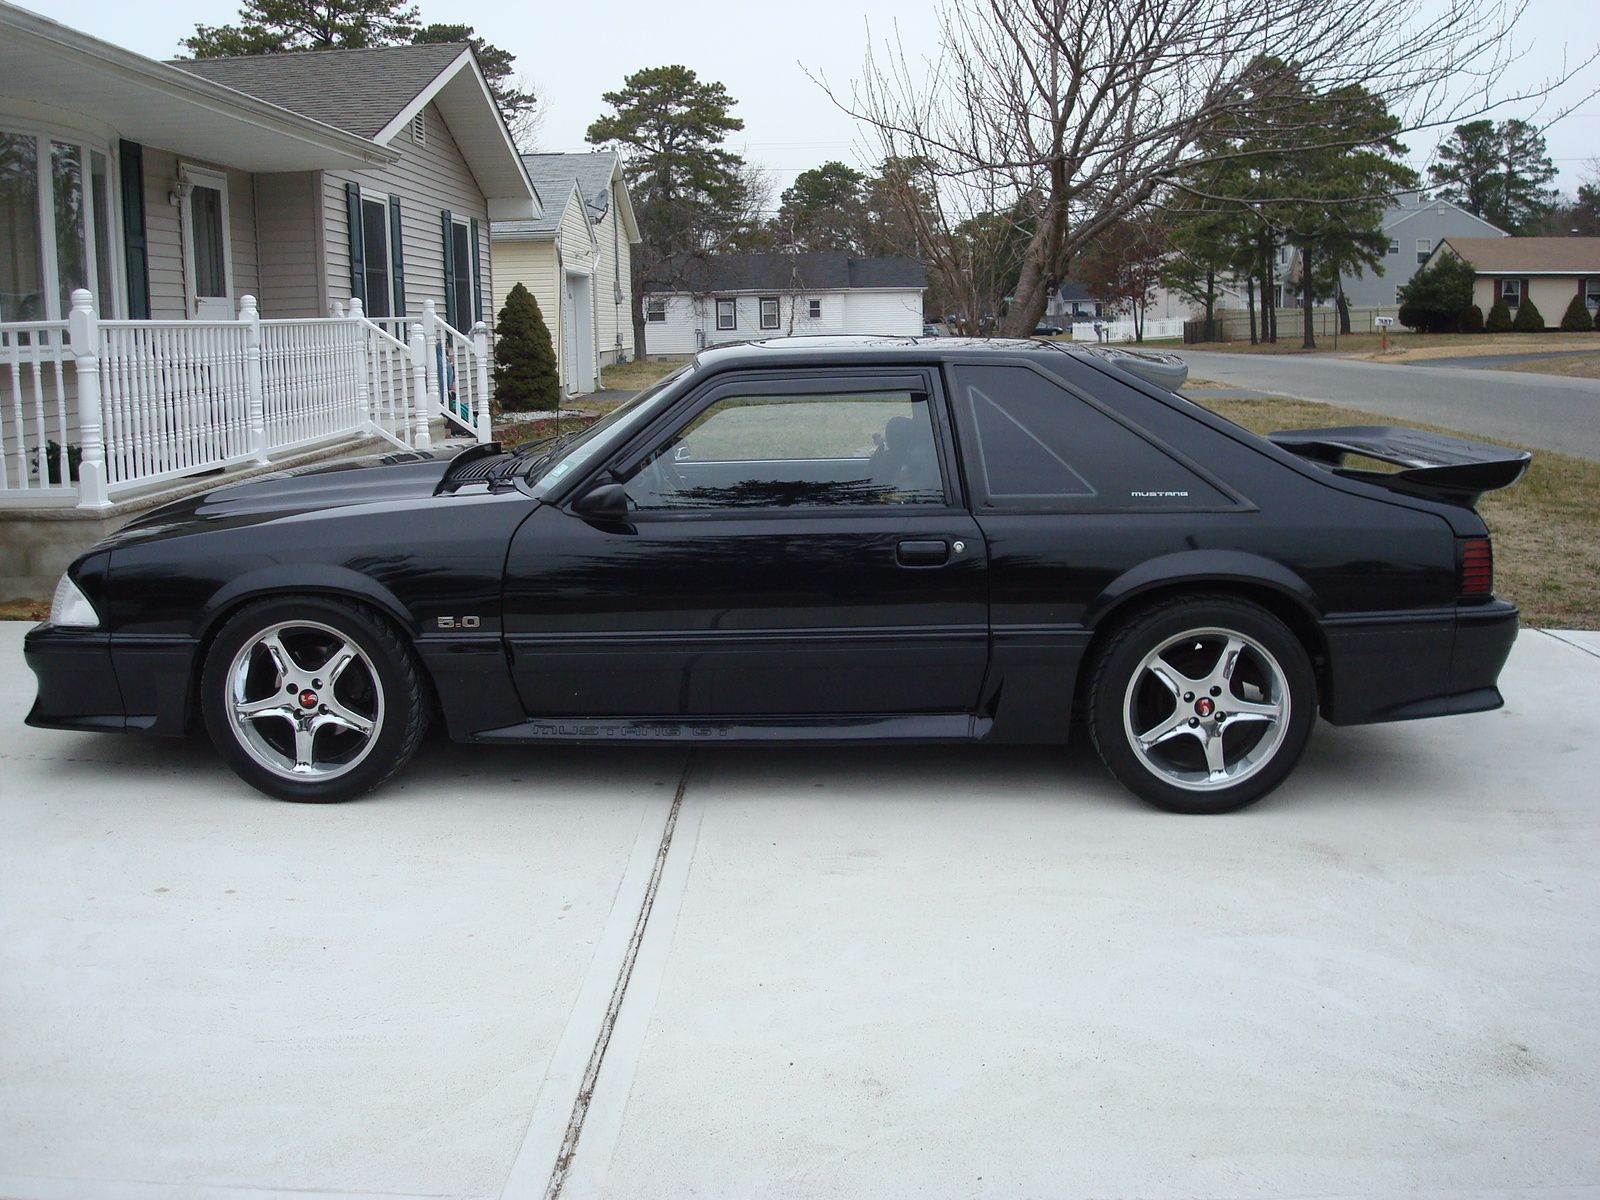 1993 ford mustang gt hatchback car i want to buy dalton in the